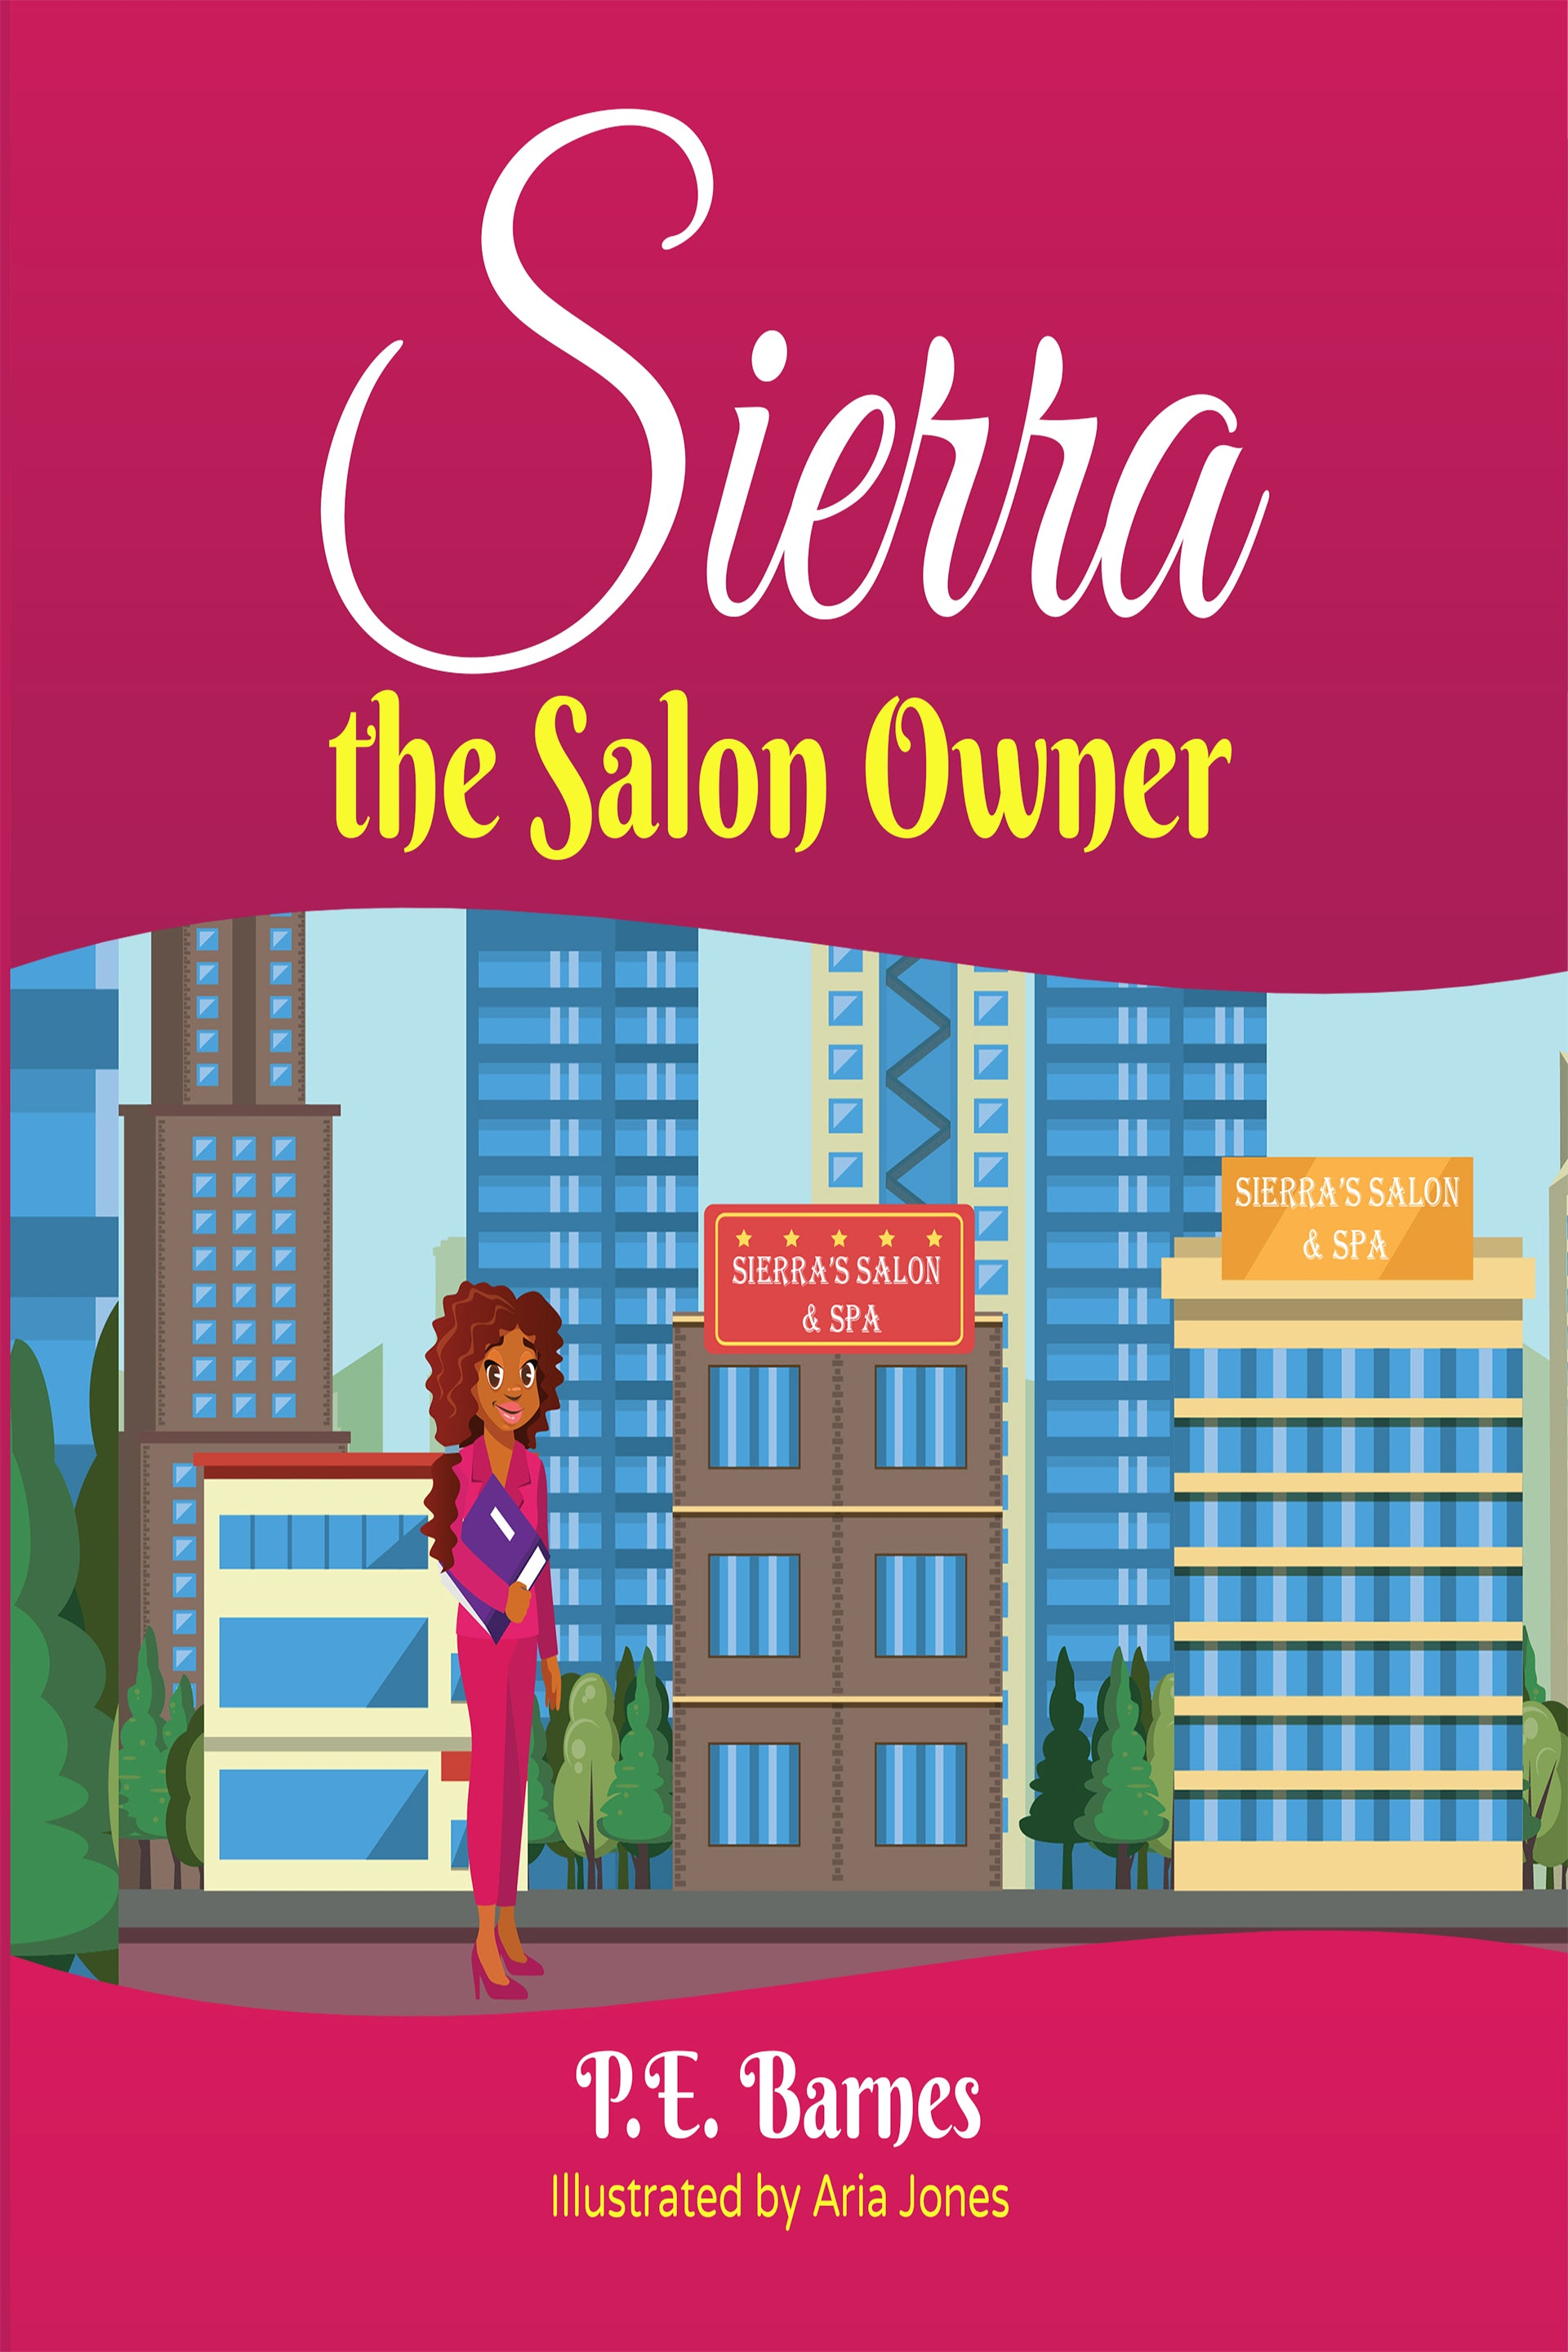 Sierra the Salon Owner (Ages 6-12)